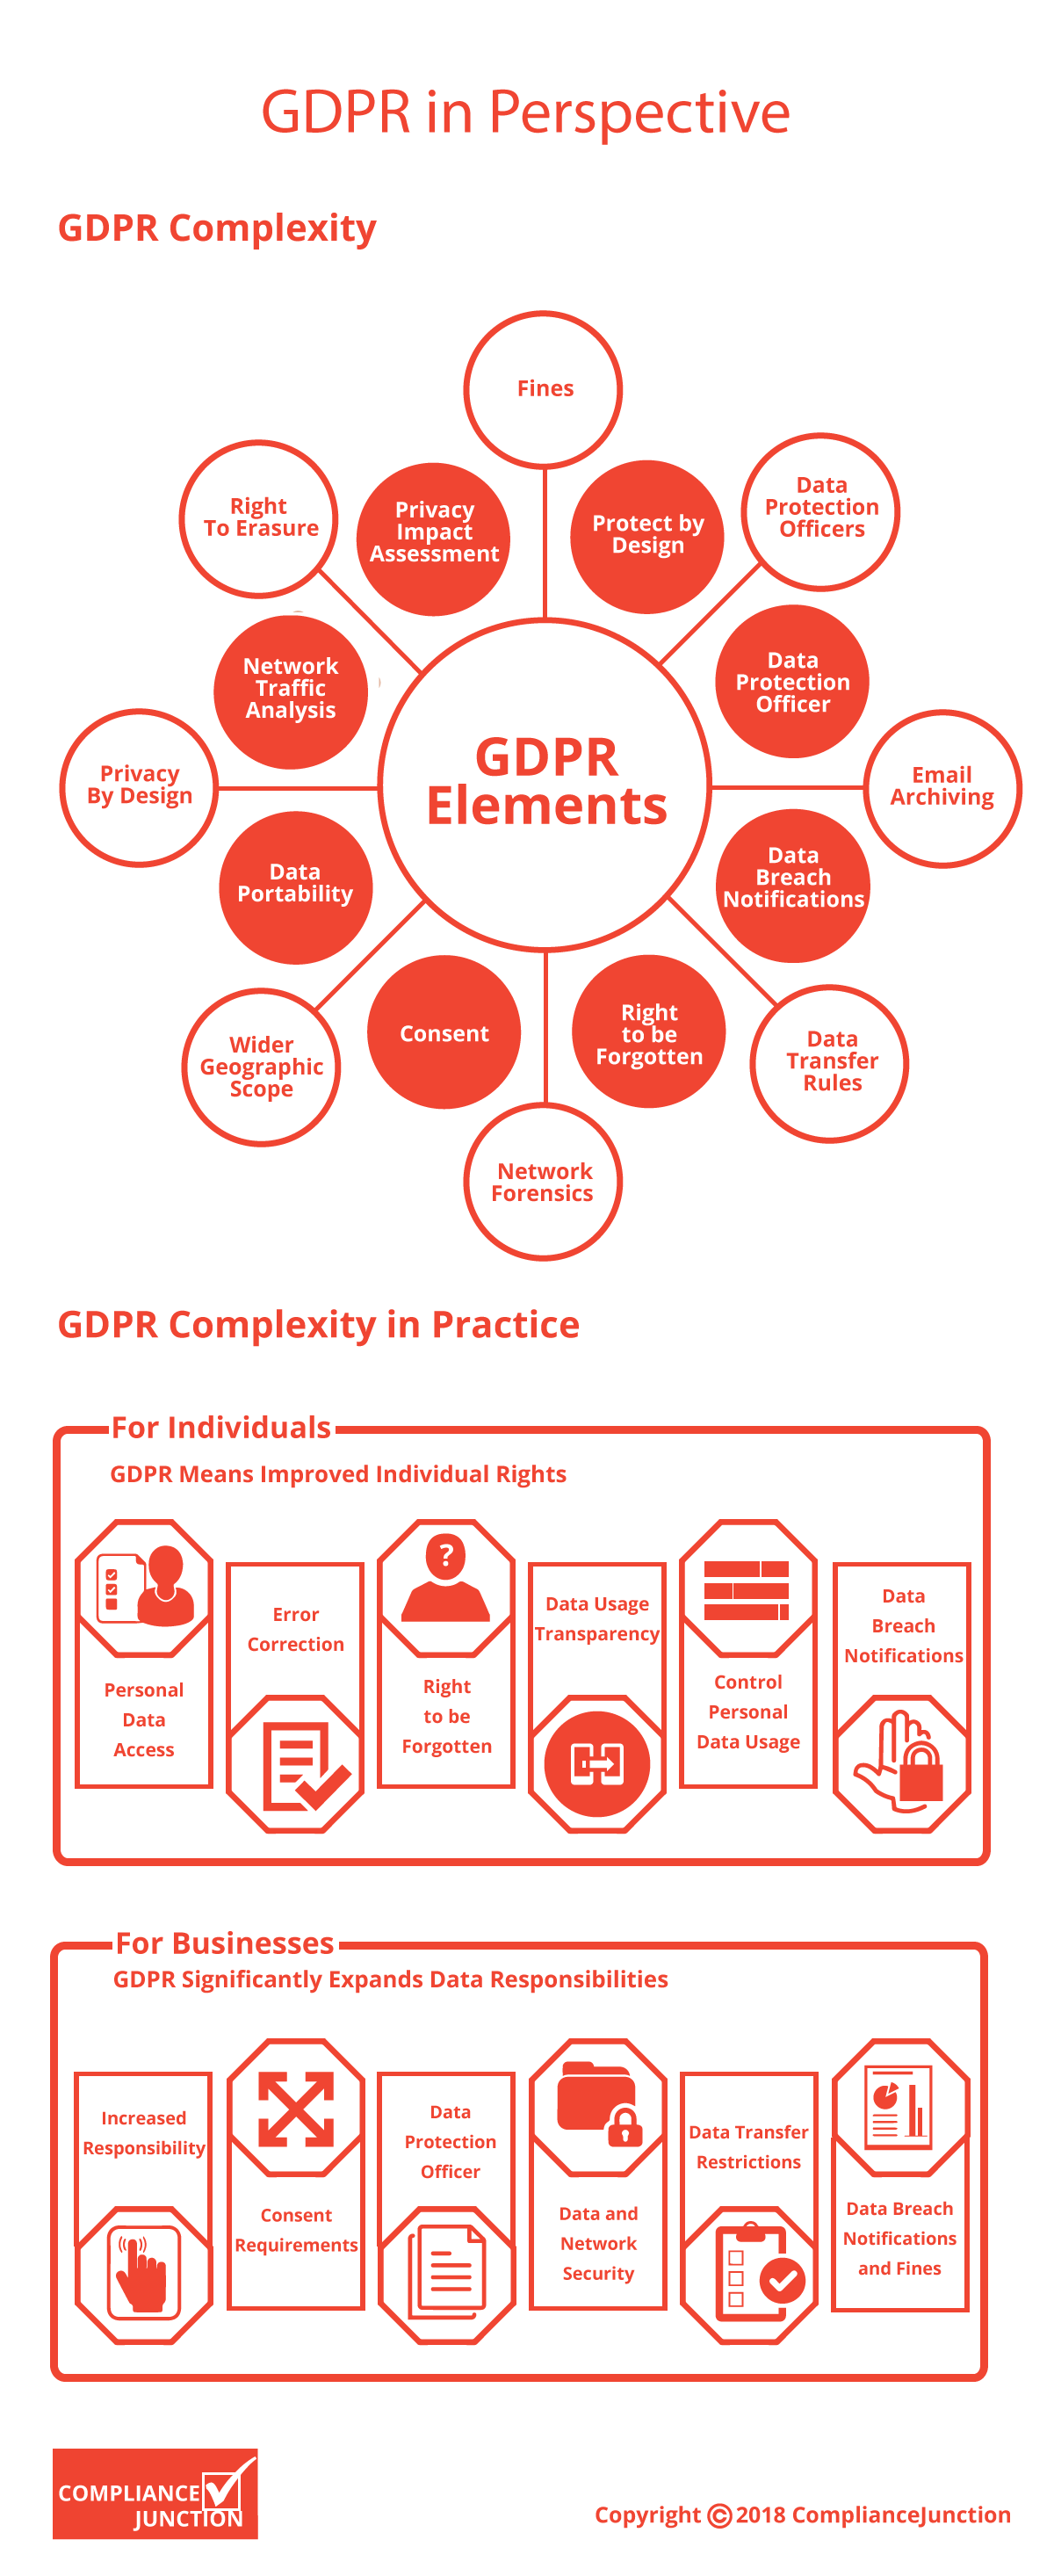 GDPR in Perspective by Compliancejunction.com